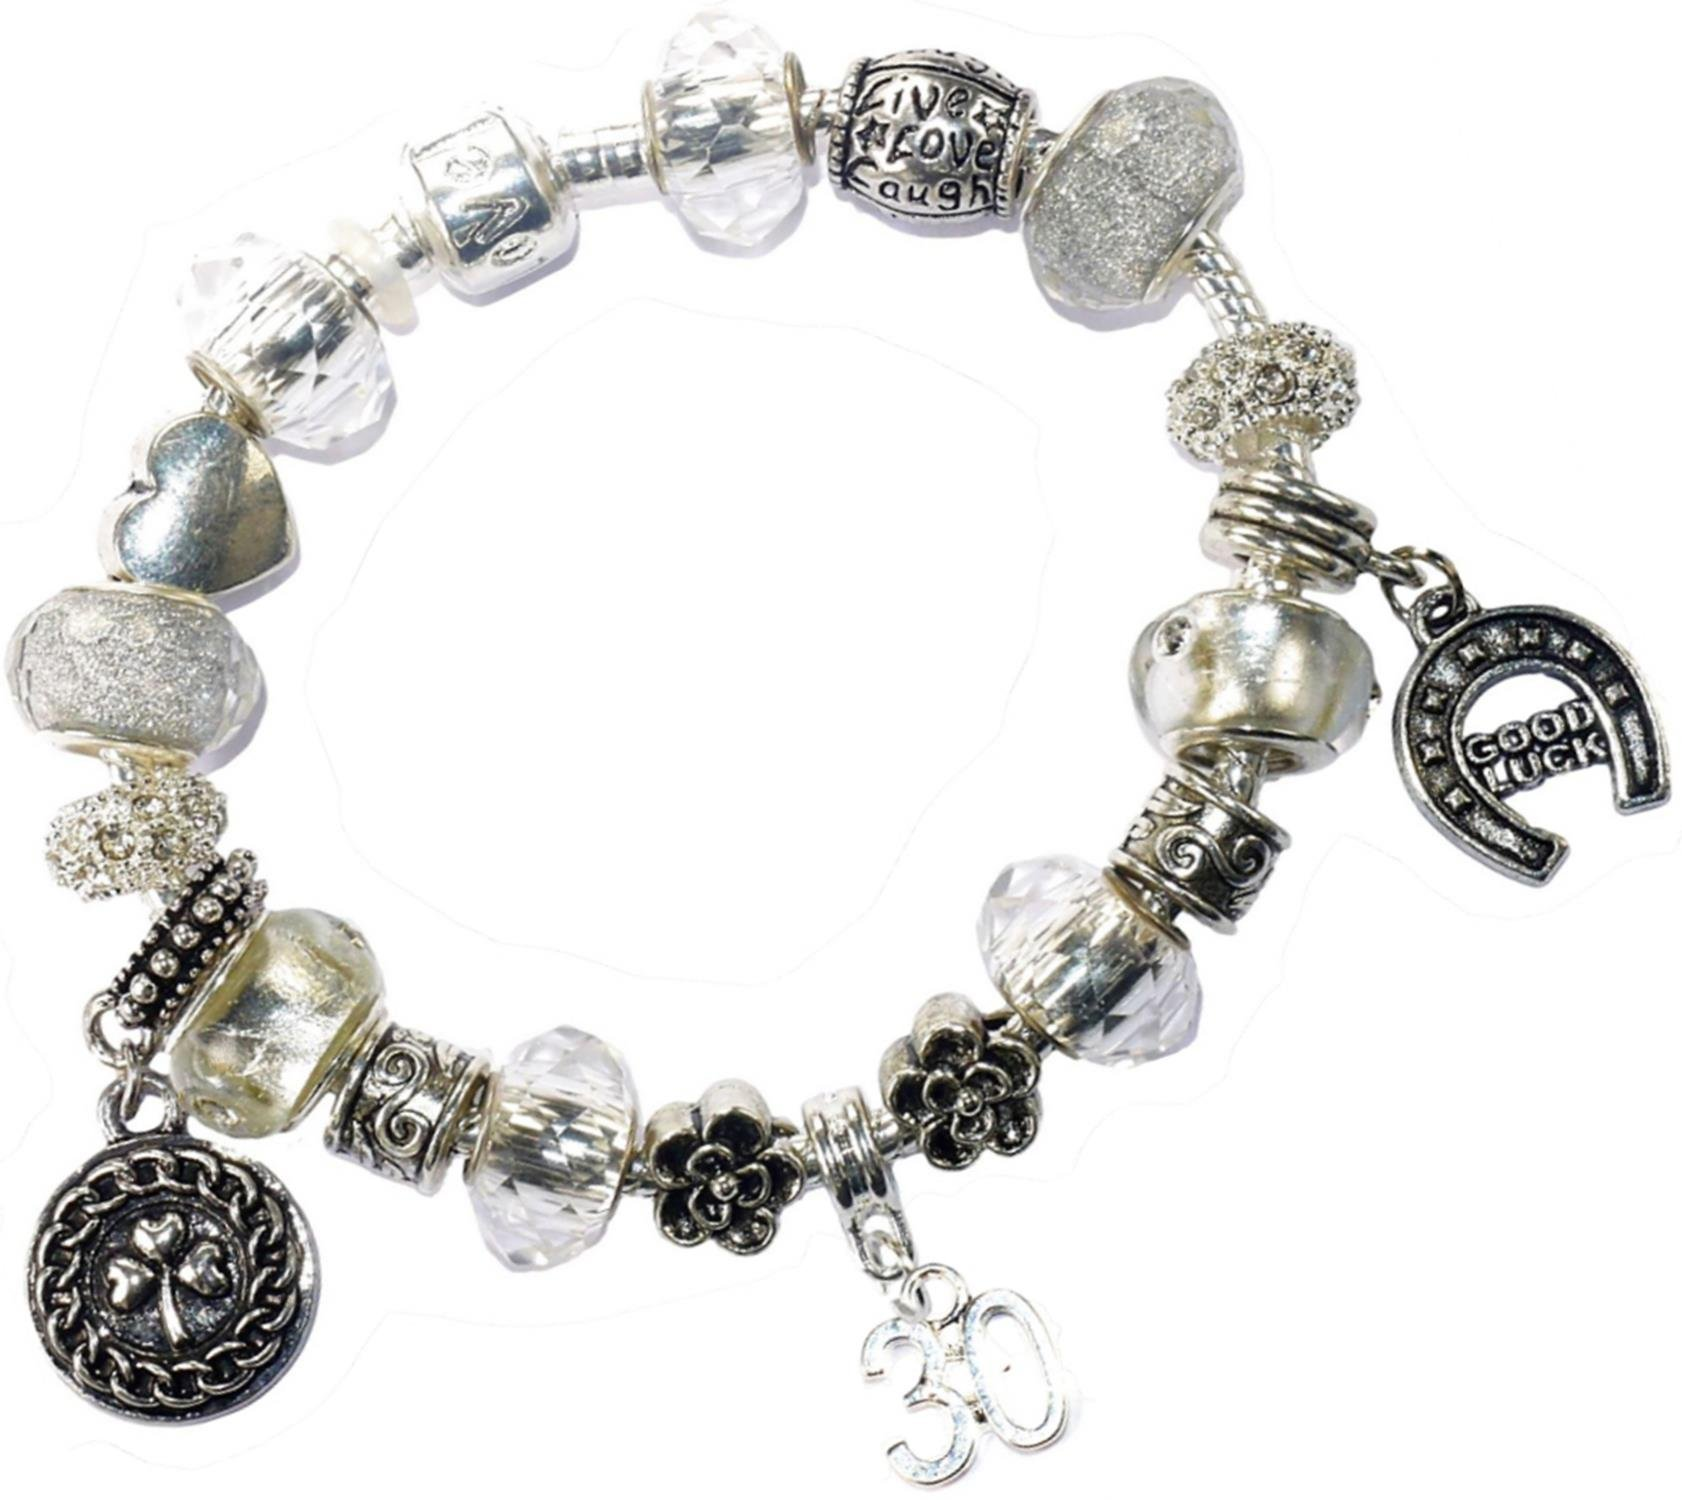 Charm Buddy 30th Birthday Iced Silver Good Luck Pandora Style Bracelet With Charms Gift Box Jewelry